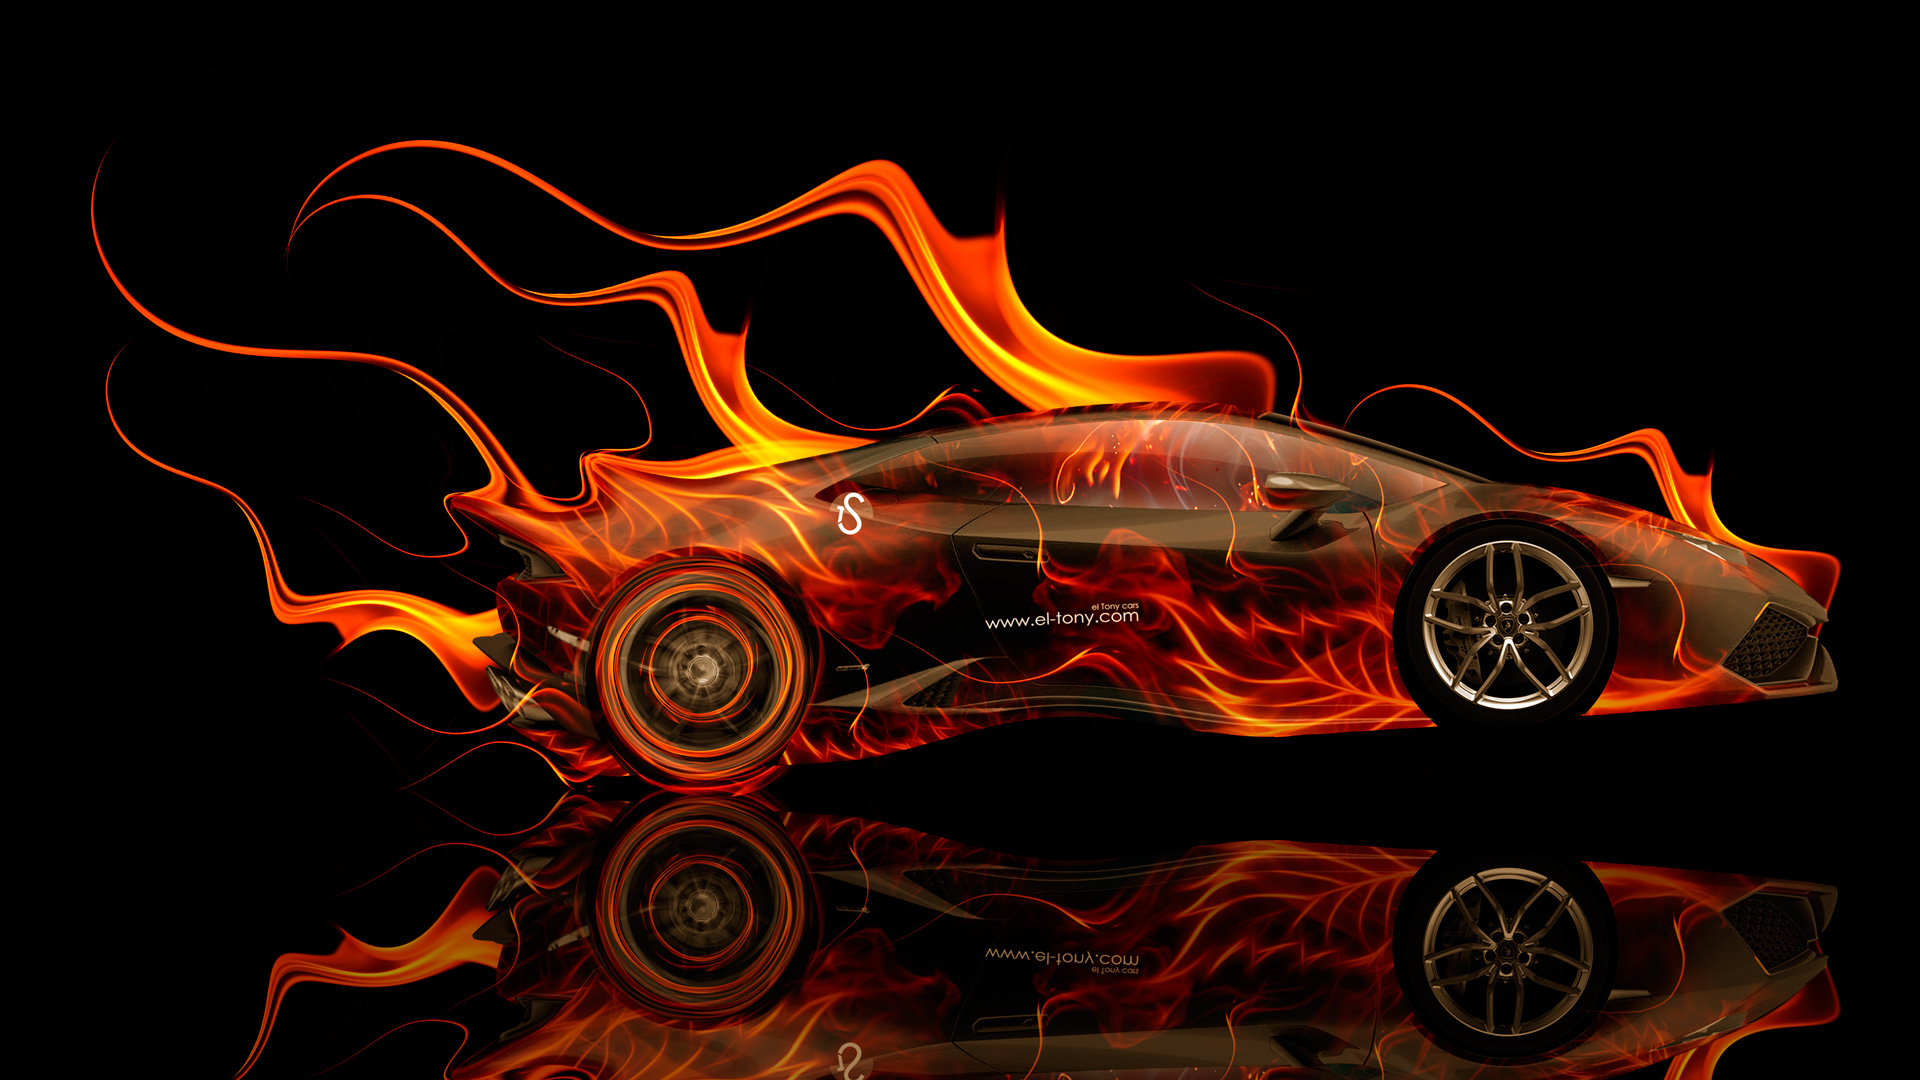 Charmant Lamborghini Huracan Side Fire Abstract Car 2014 HD